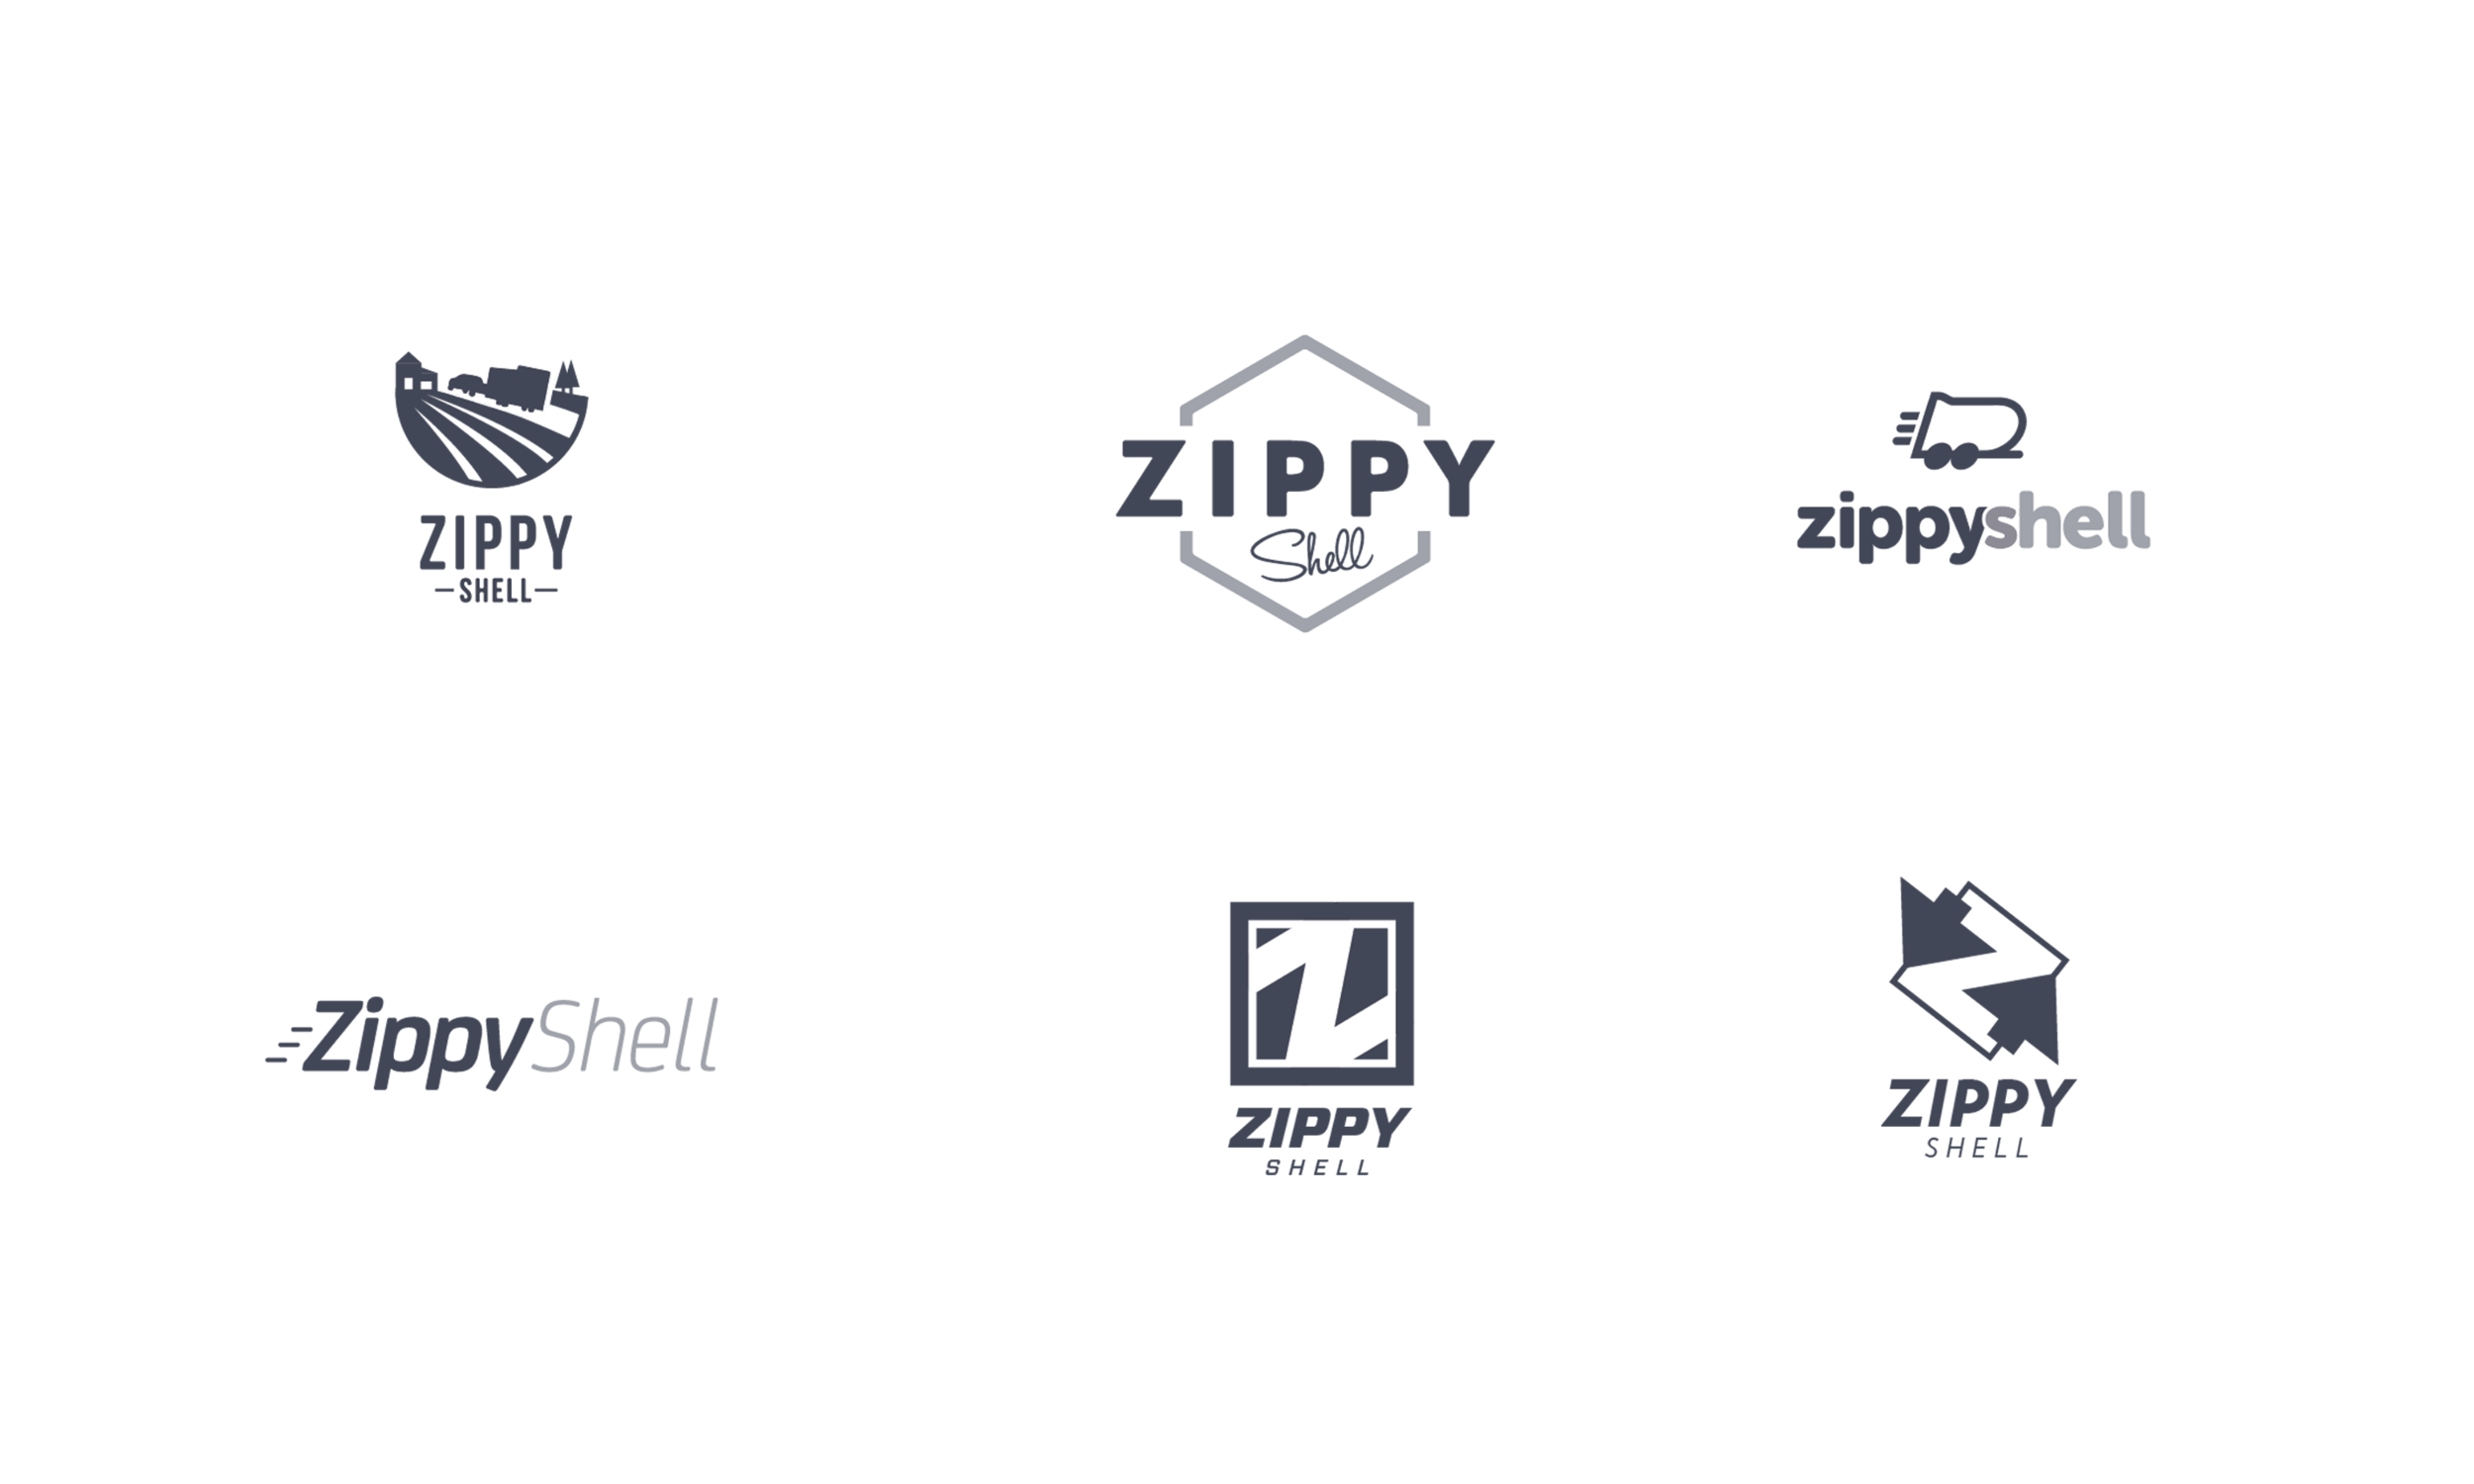 These are the initial logo concepts we presented to Zippy Shell's leadership.